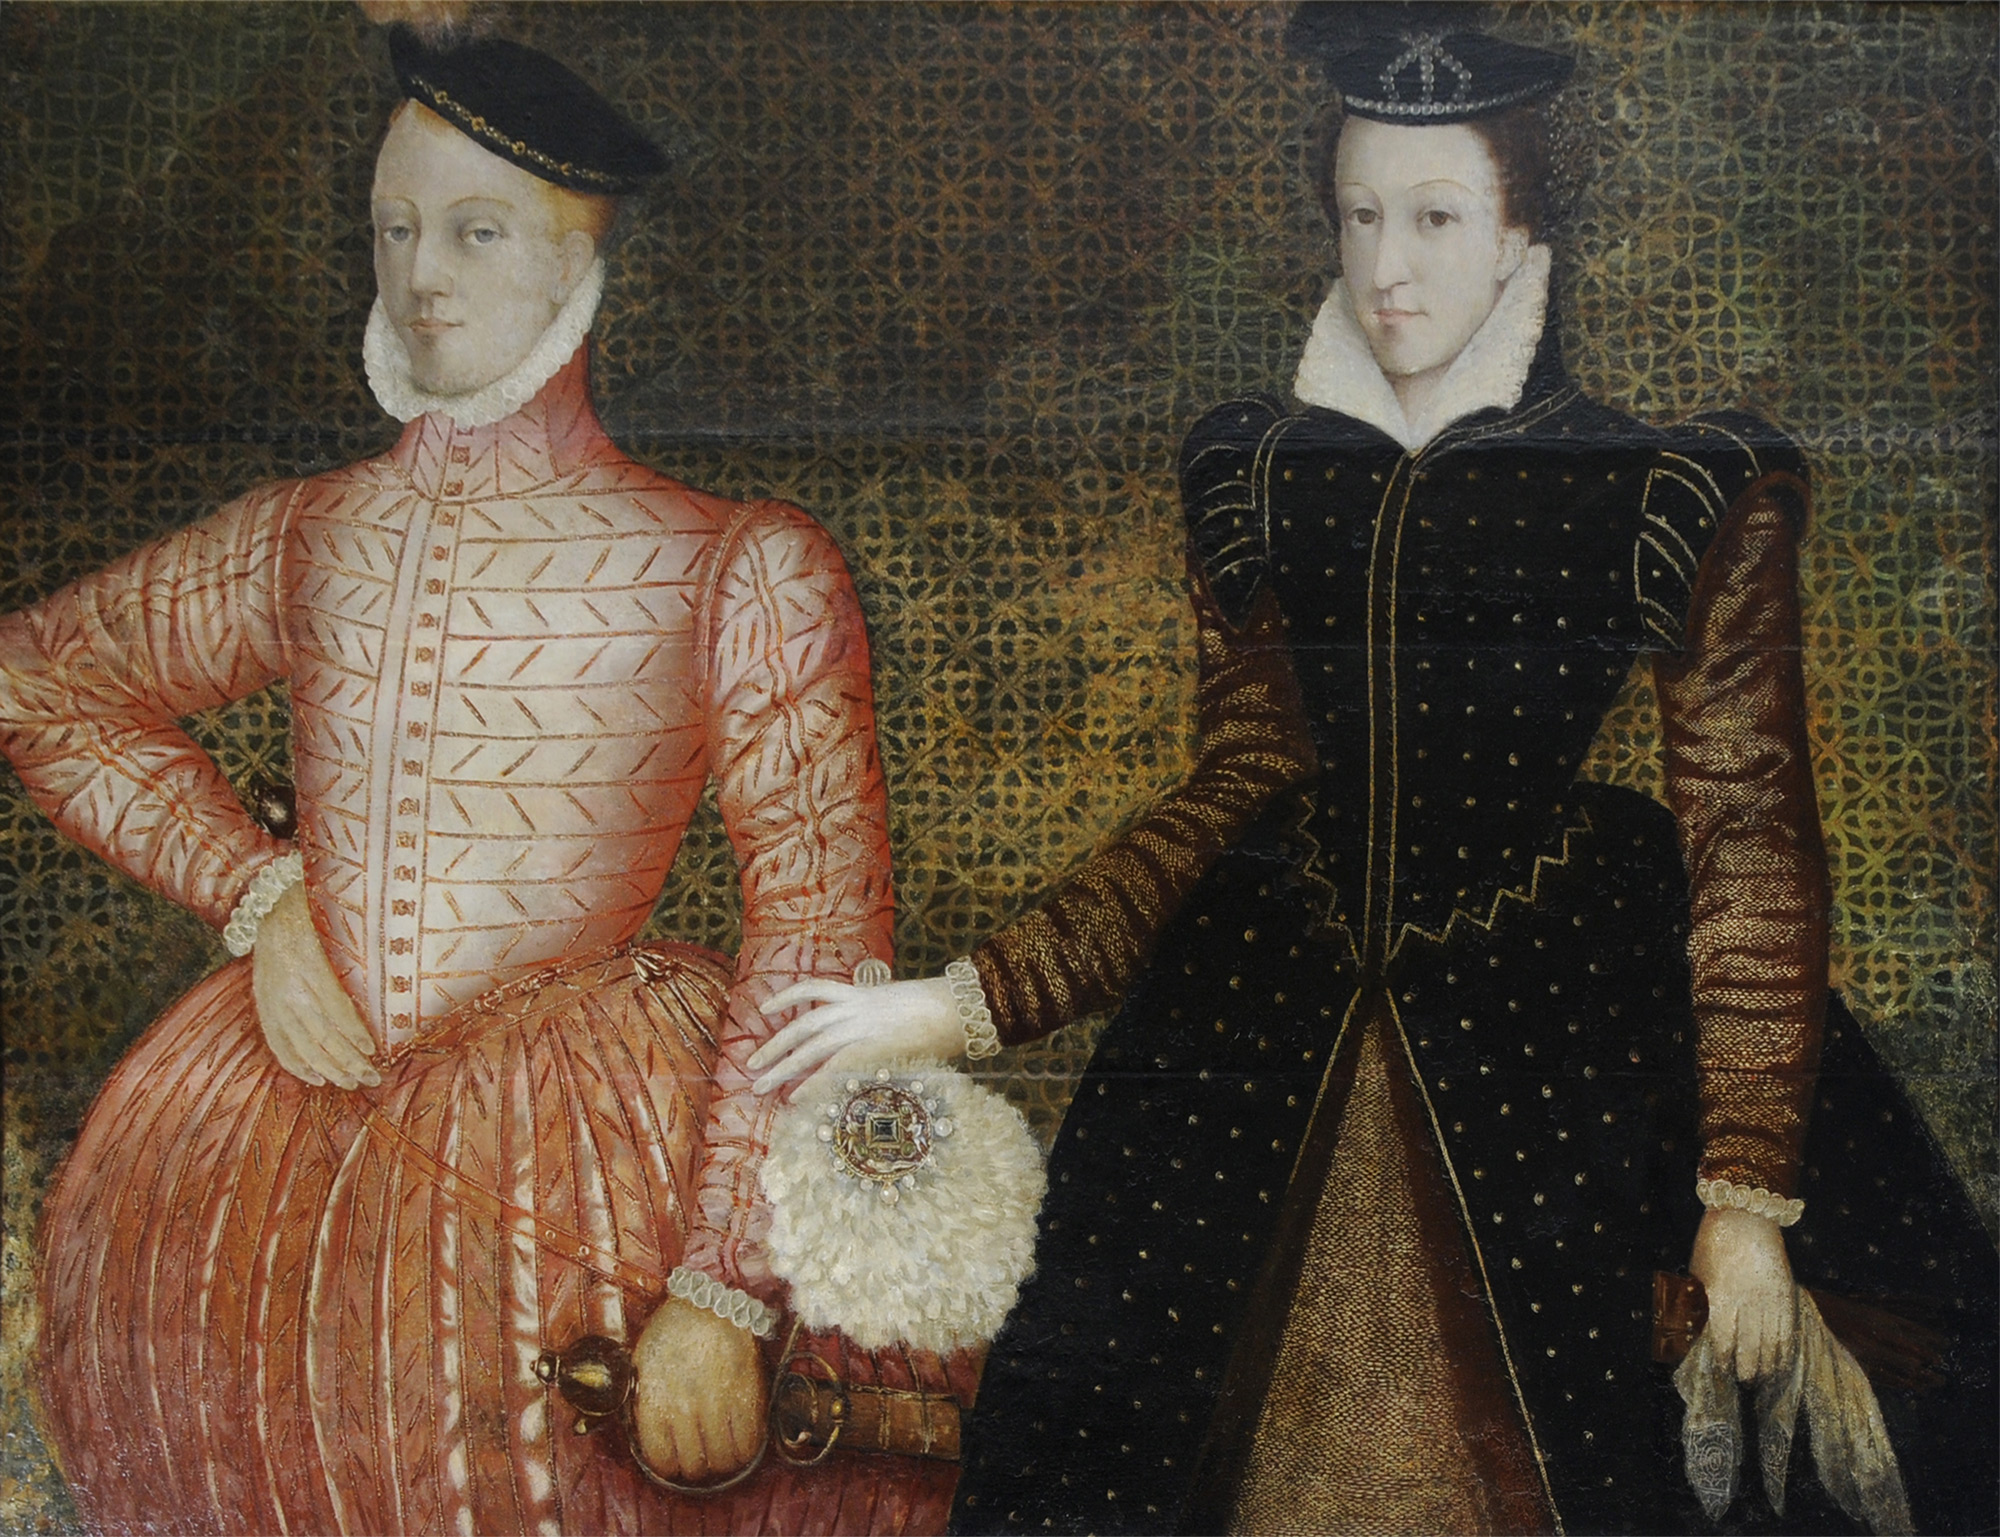 Portrait of Mary Queen of Scots and Lord Darnley c. 1565